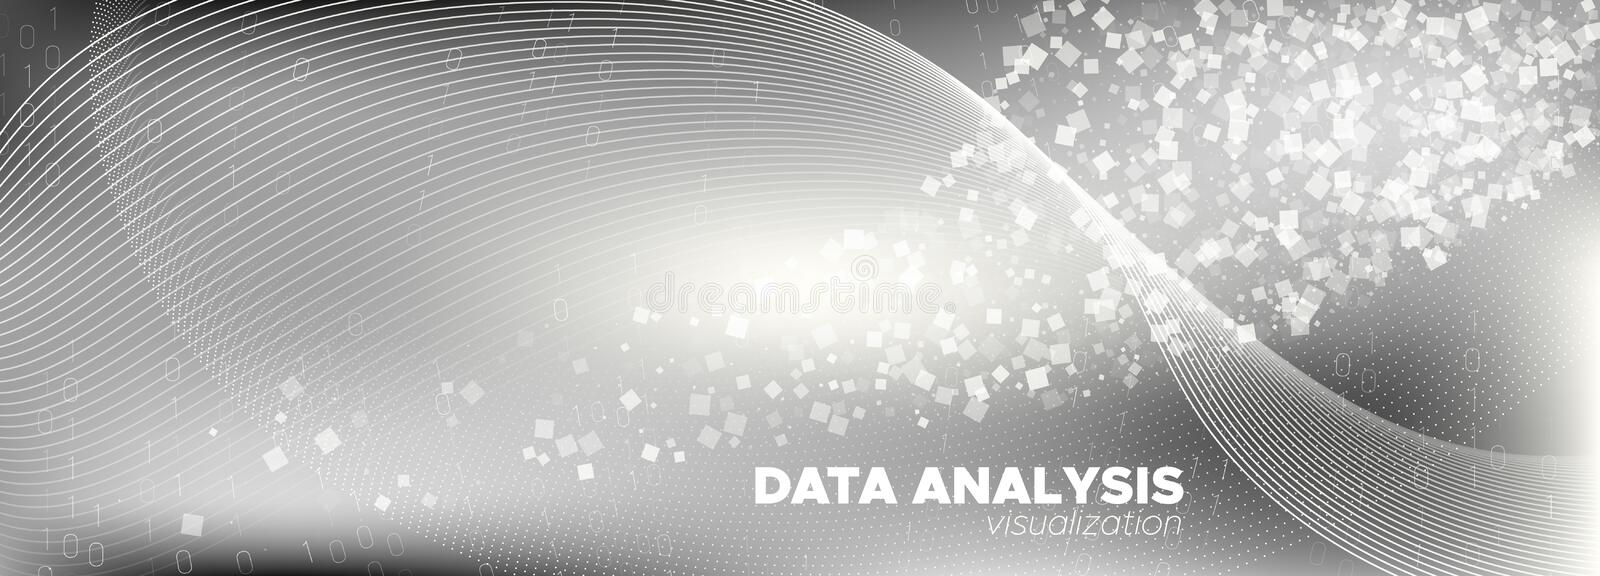 Streaming Visualization. White Digital Particles. vector illustration